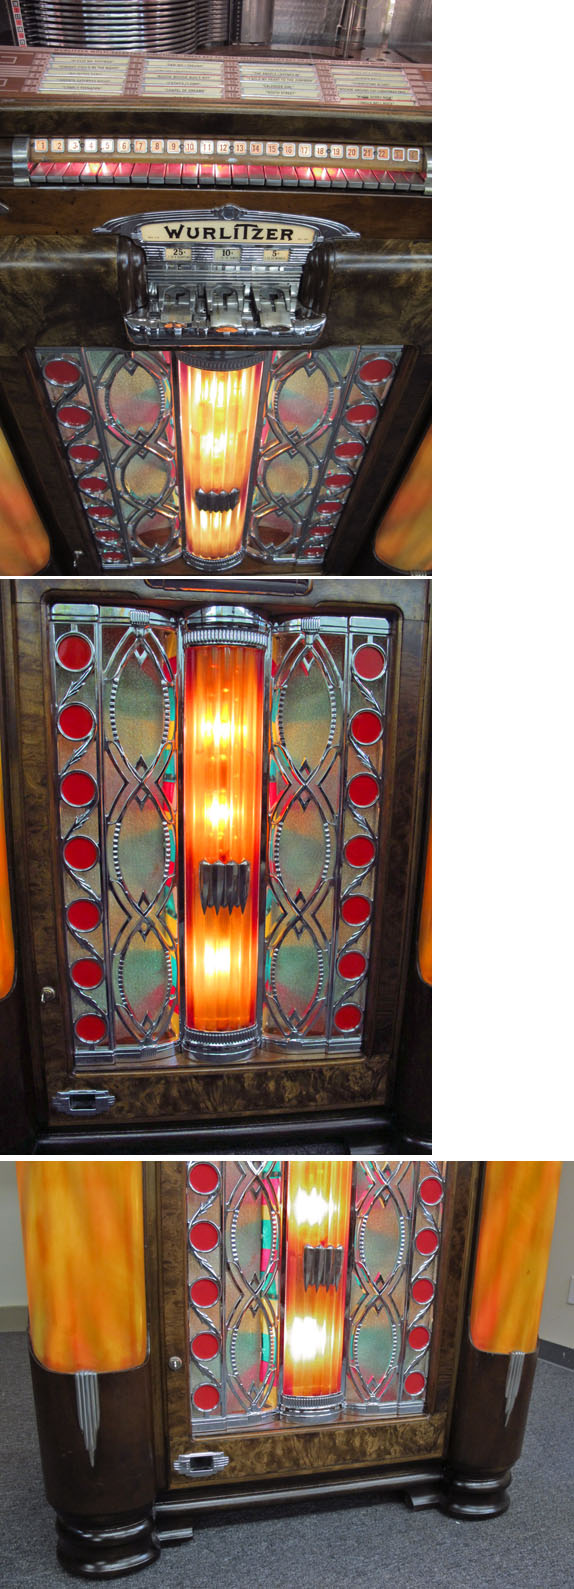 wurlitzer 800 jukebox. Black Bedroom Furniture Sets. Home Design Ideas